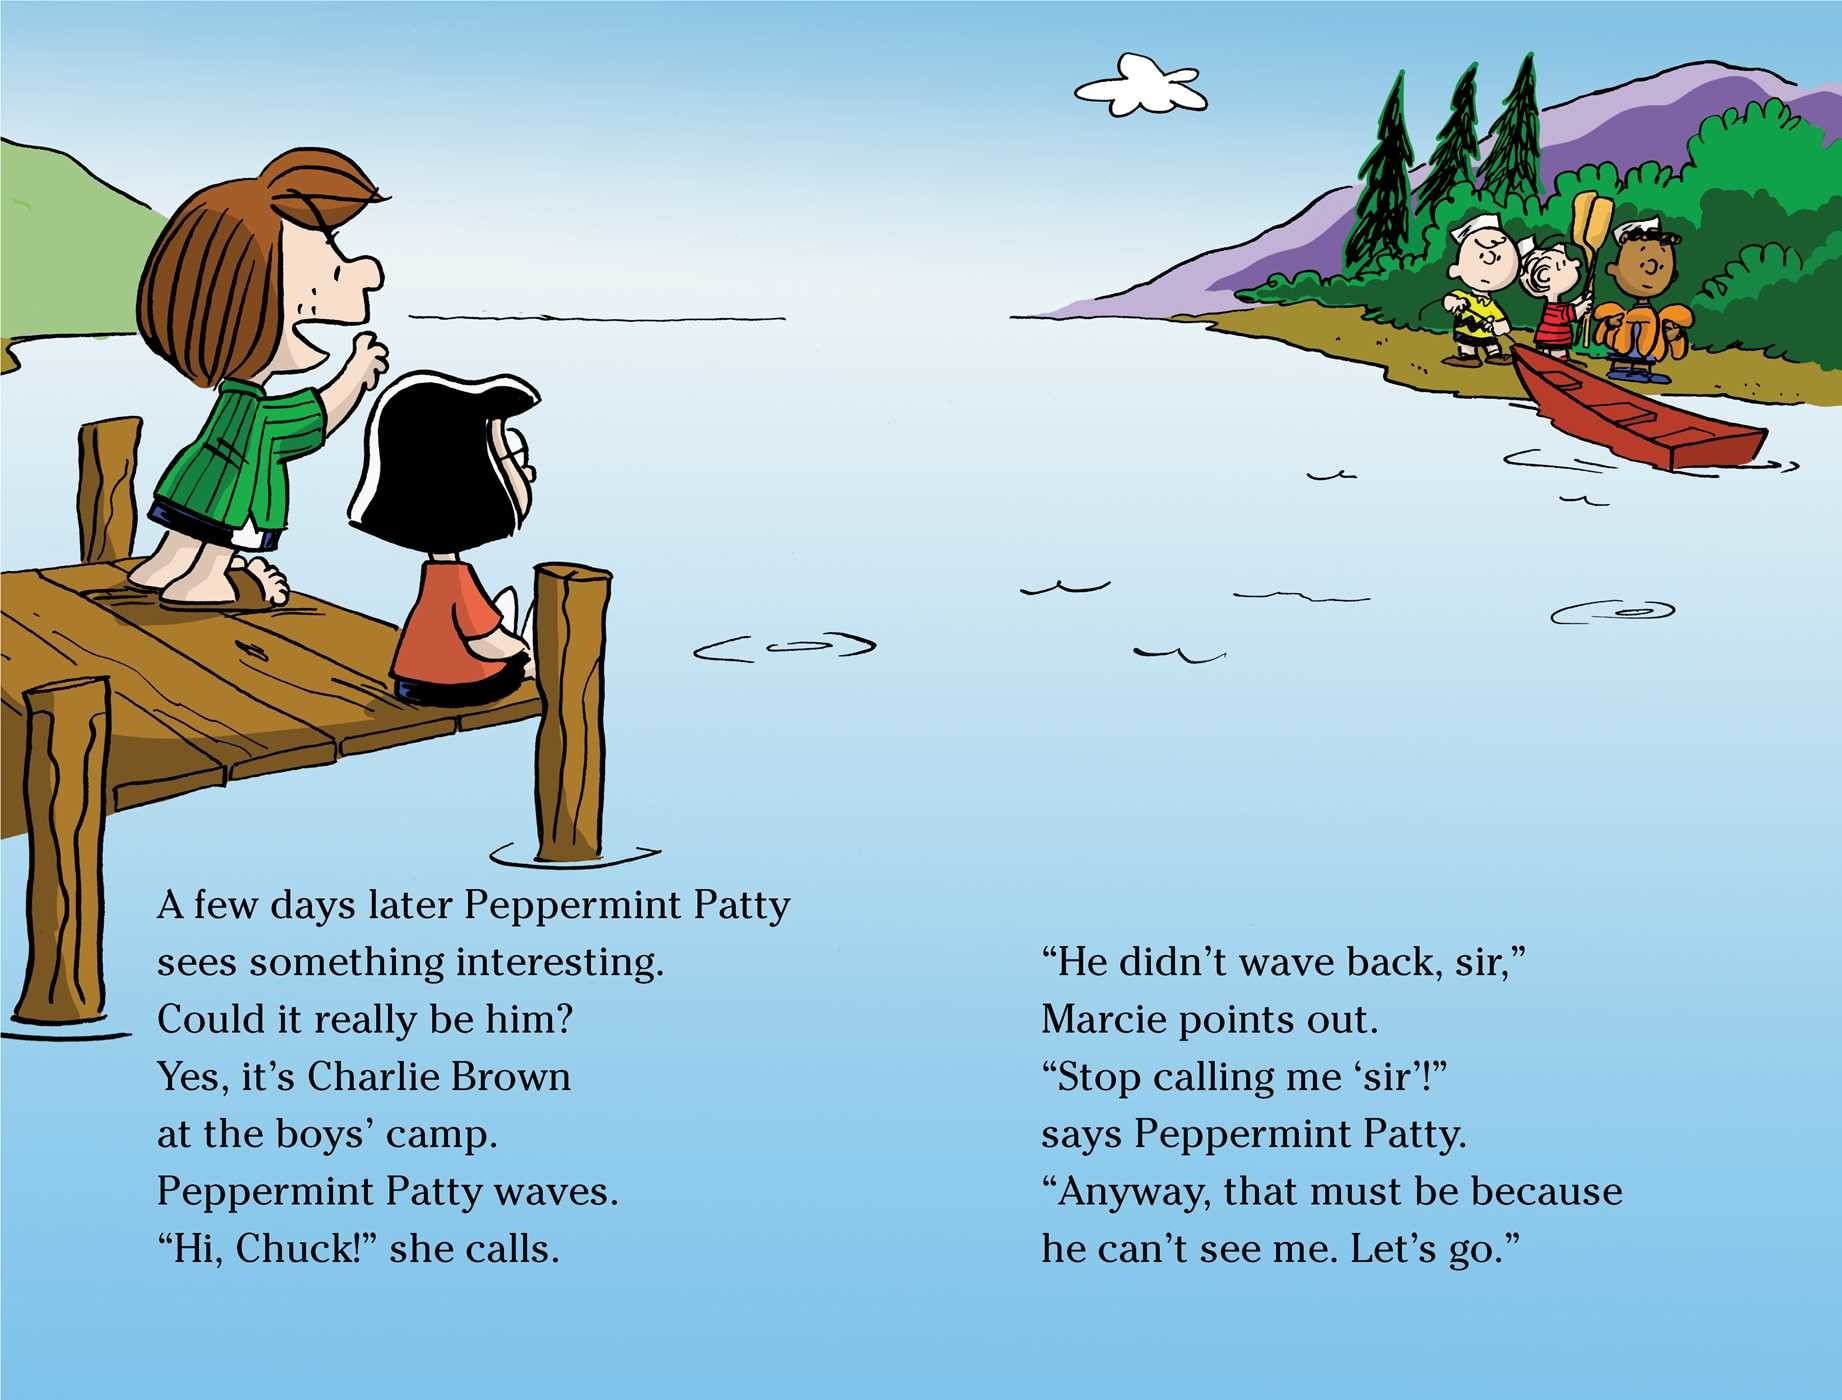 Peppermint patty goes to camp 9781481462624.in03